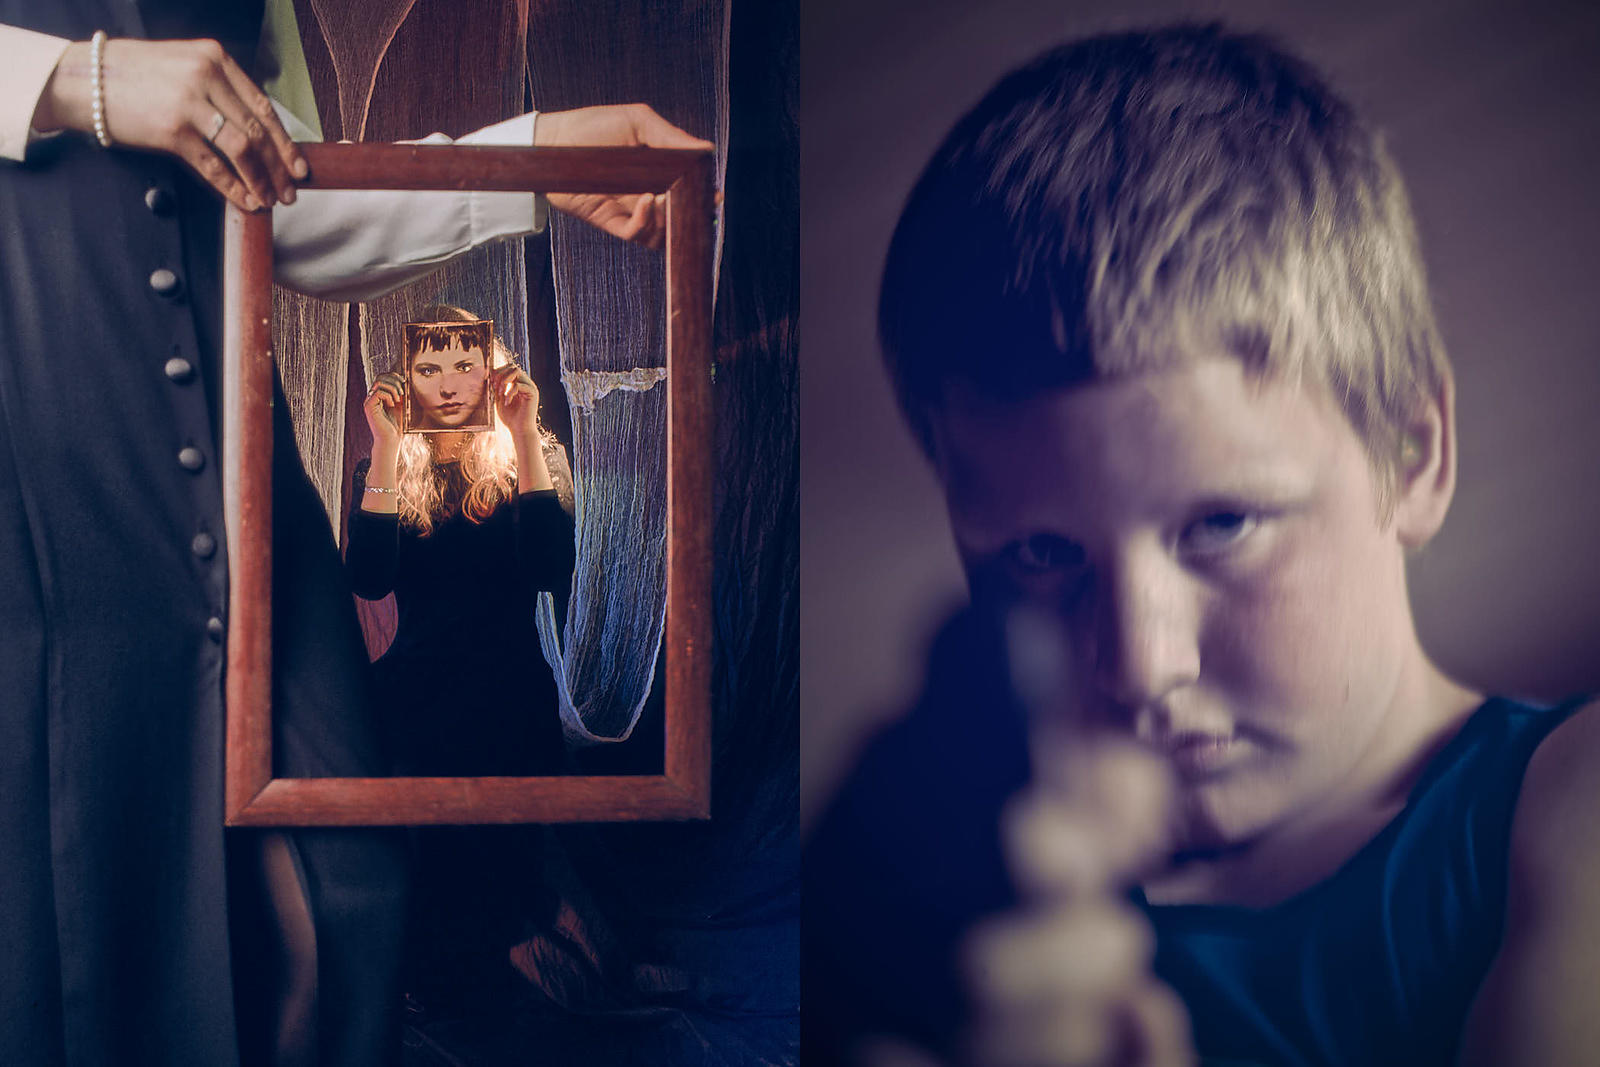 08-conceptual-images-boy-child-takes-aim-at-framed-masked-lady-in-dark-environment-suggesting-vulnerable-facades-are-fragile-...